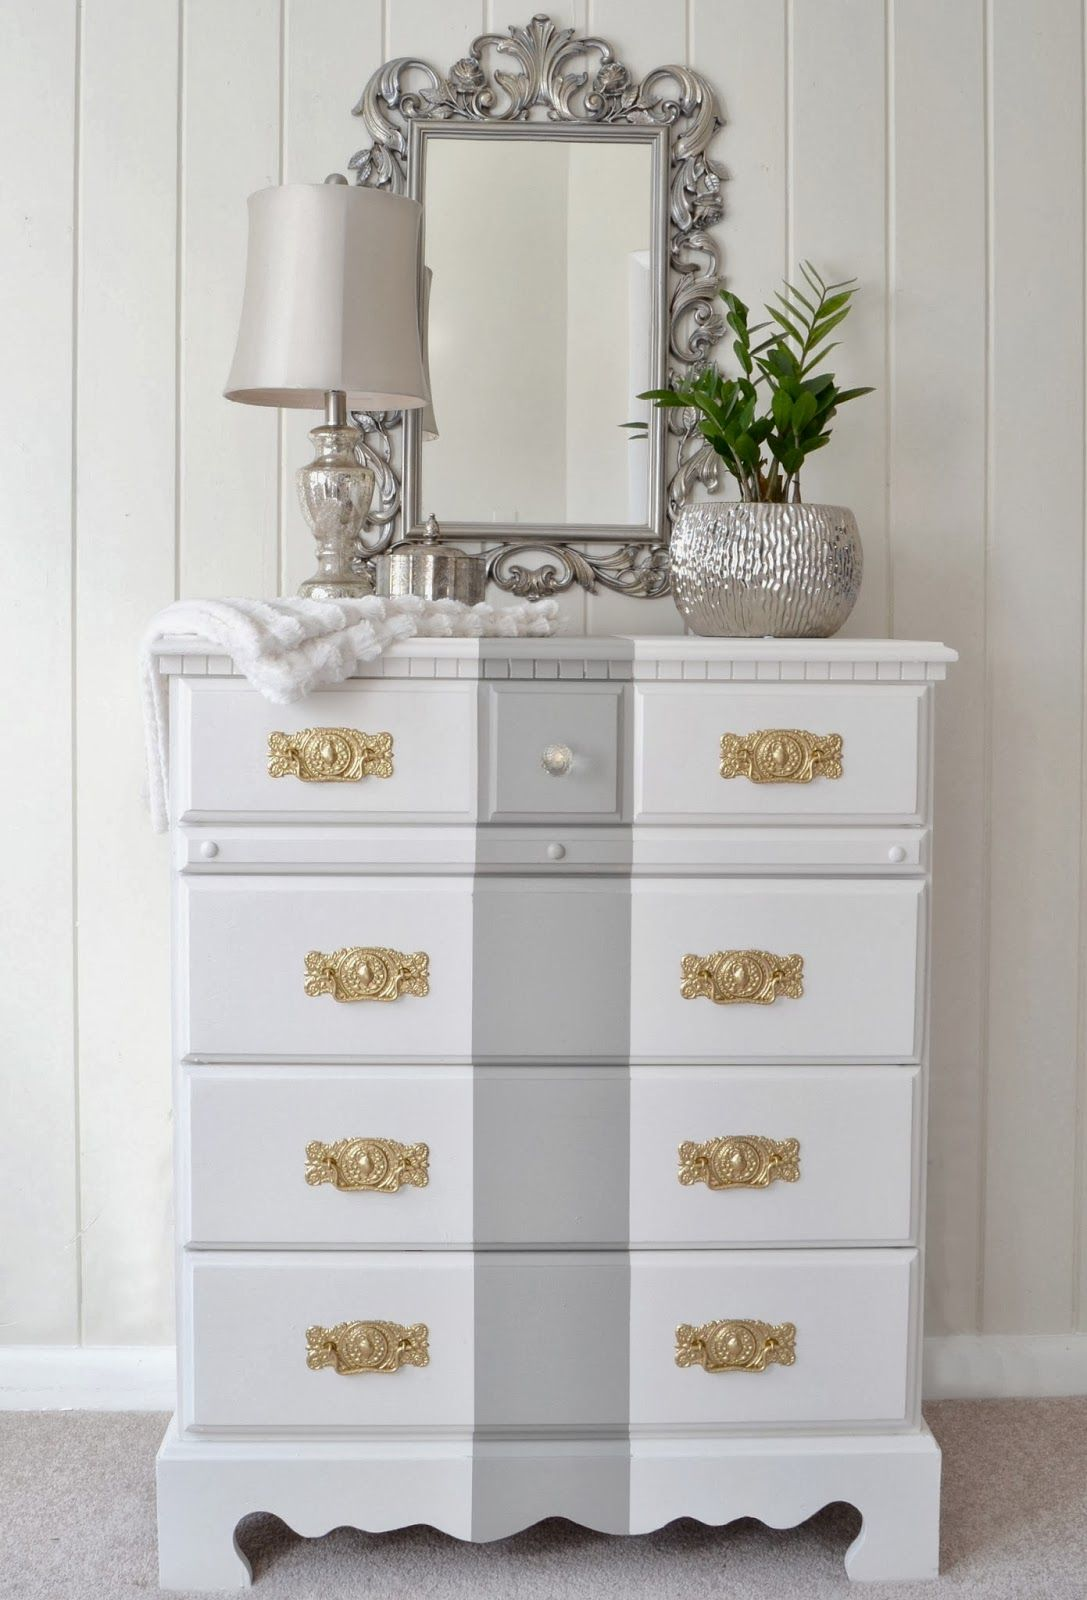 This Site Has Tons Of Great Ideas On How To. Thrift Store FurnitureOld ...